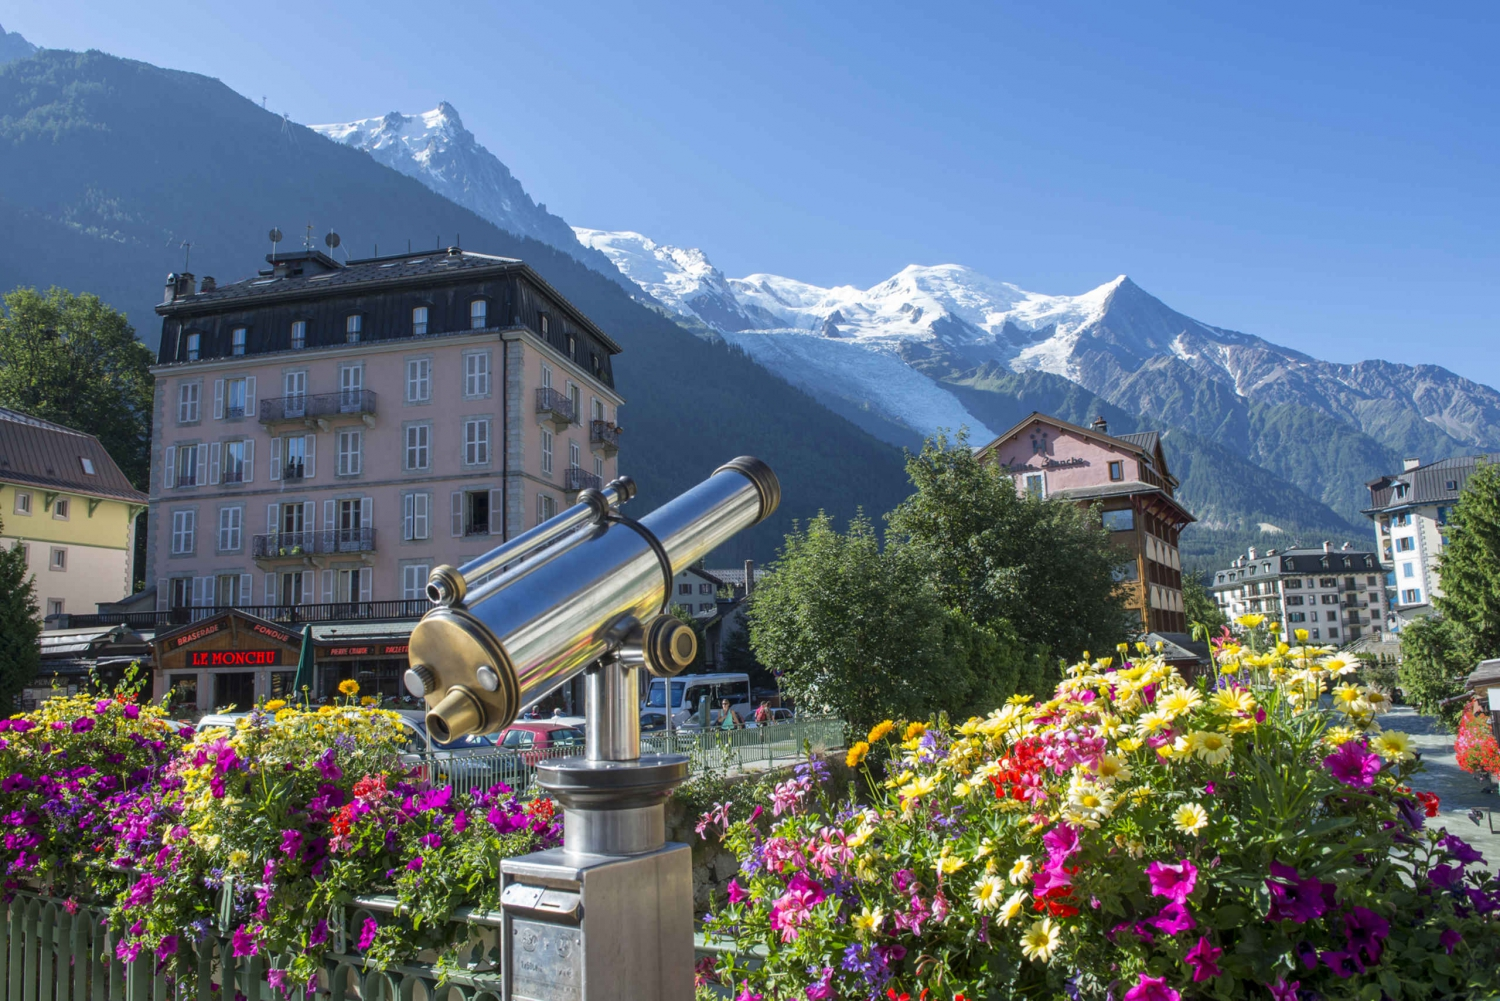 7-Hour Chamonix Excursion from Geneva